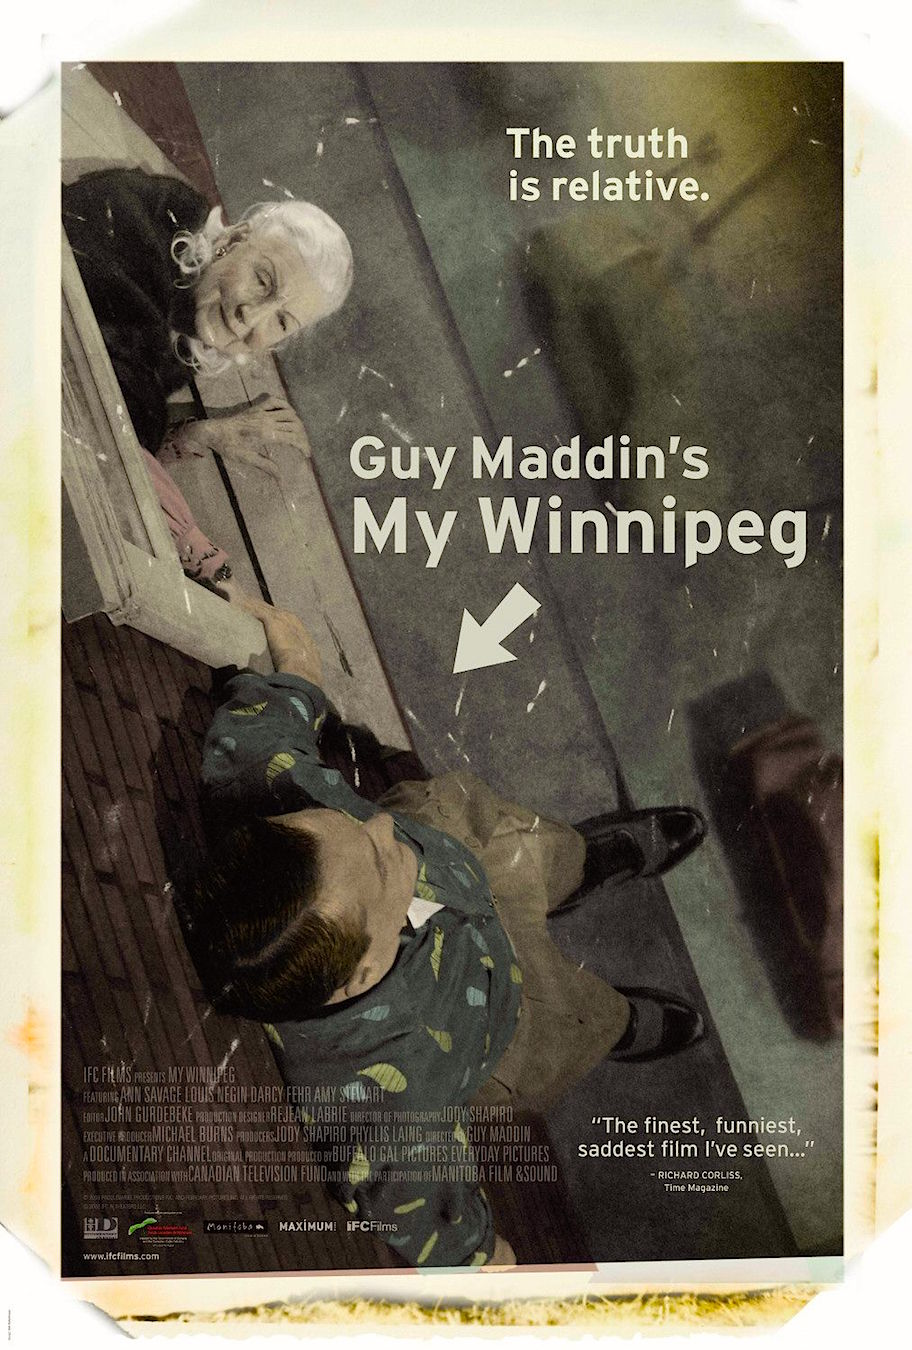 """Fact, fantasy or memory?"" My Winnipeg Guy Maddin, 2007 Cinematography 